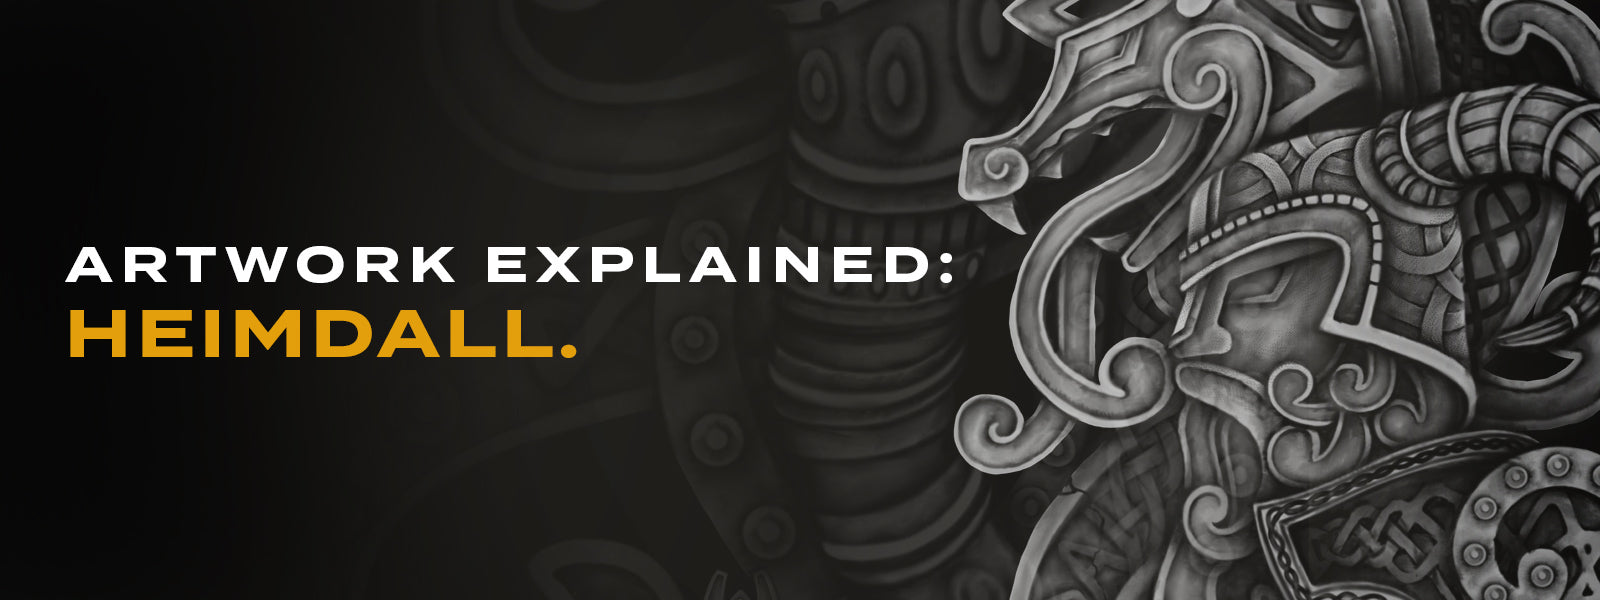 Artwork Explained: Heimdall